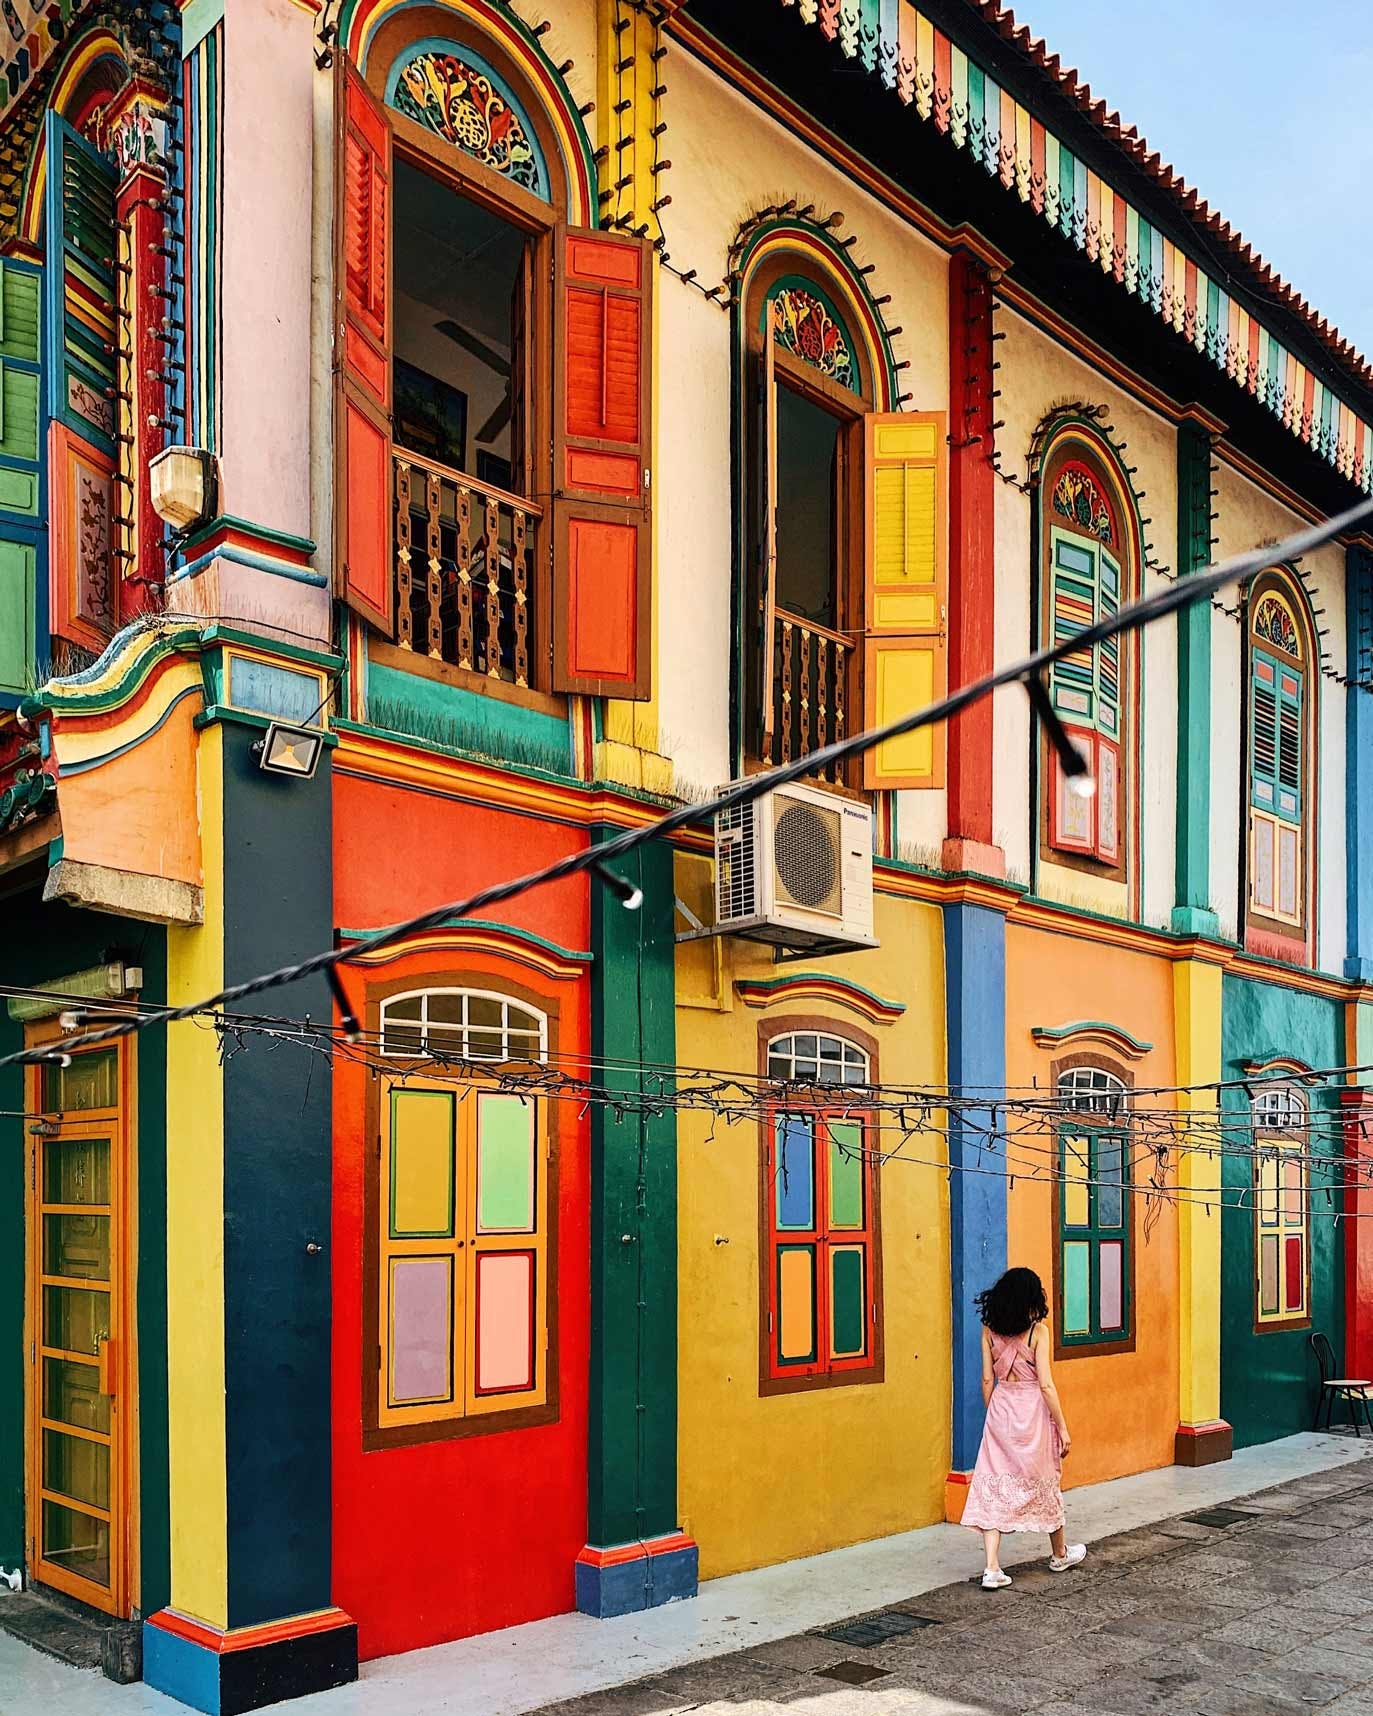 Most Instagrammable Places in Singapore/@elensham